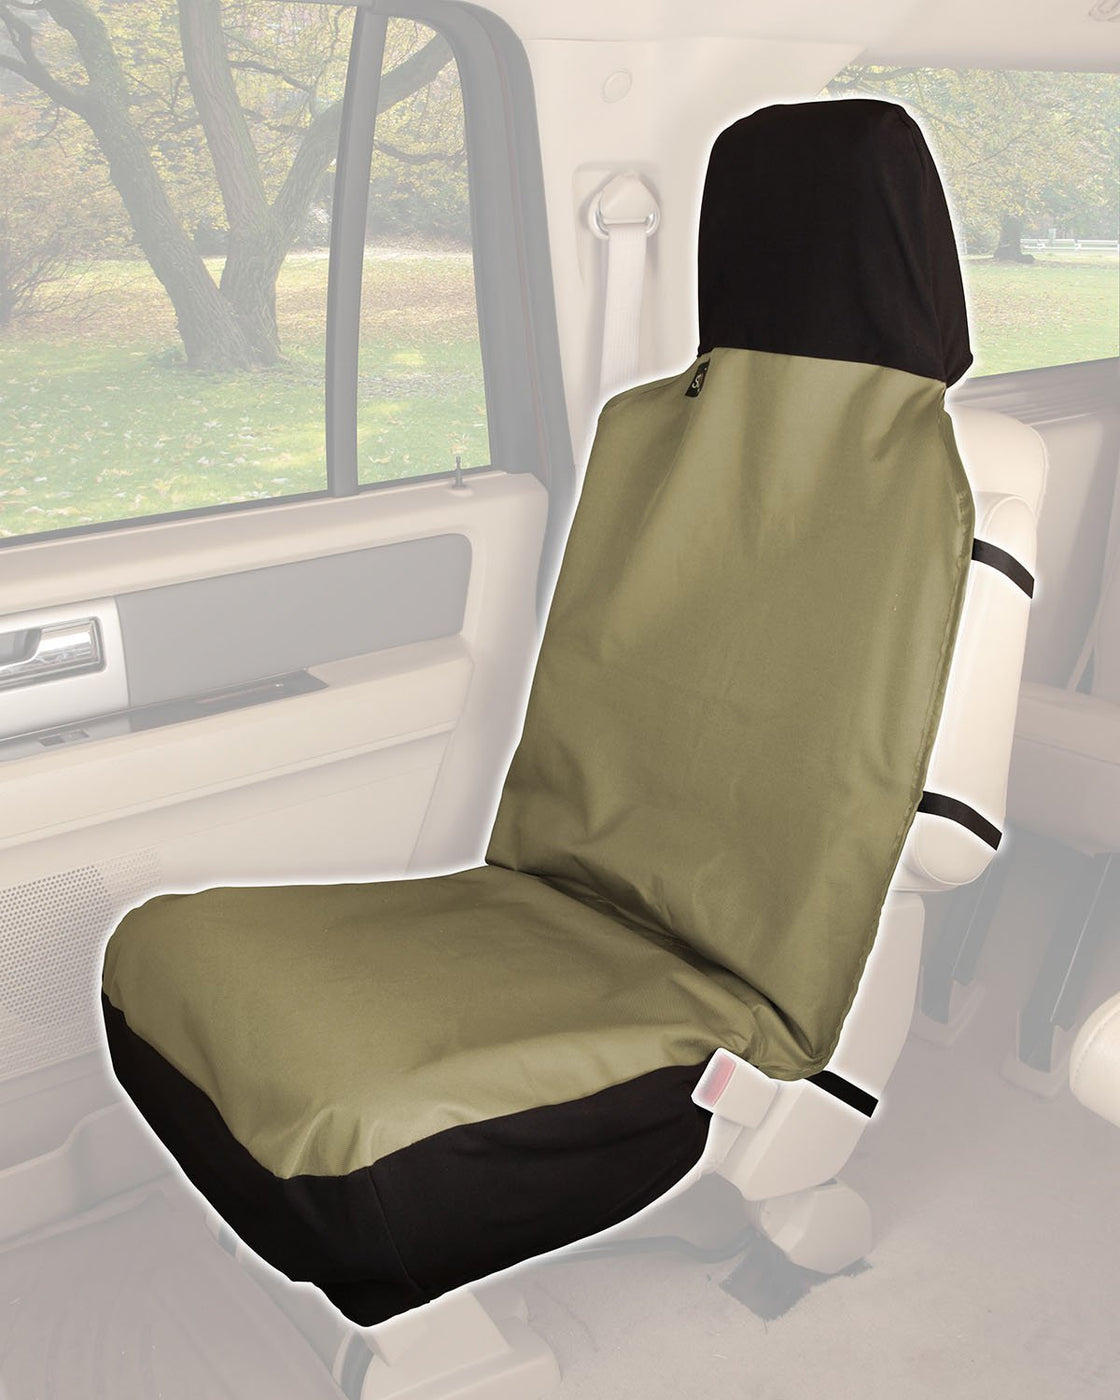 Solvit Waterproof Sta Put Bucket Seat Cover For Pets